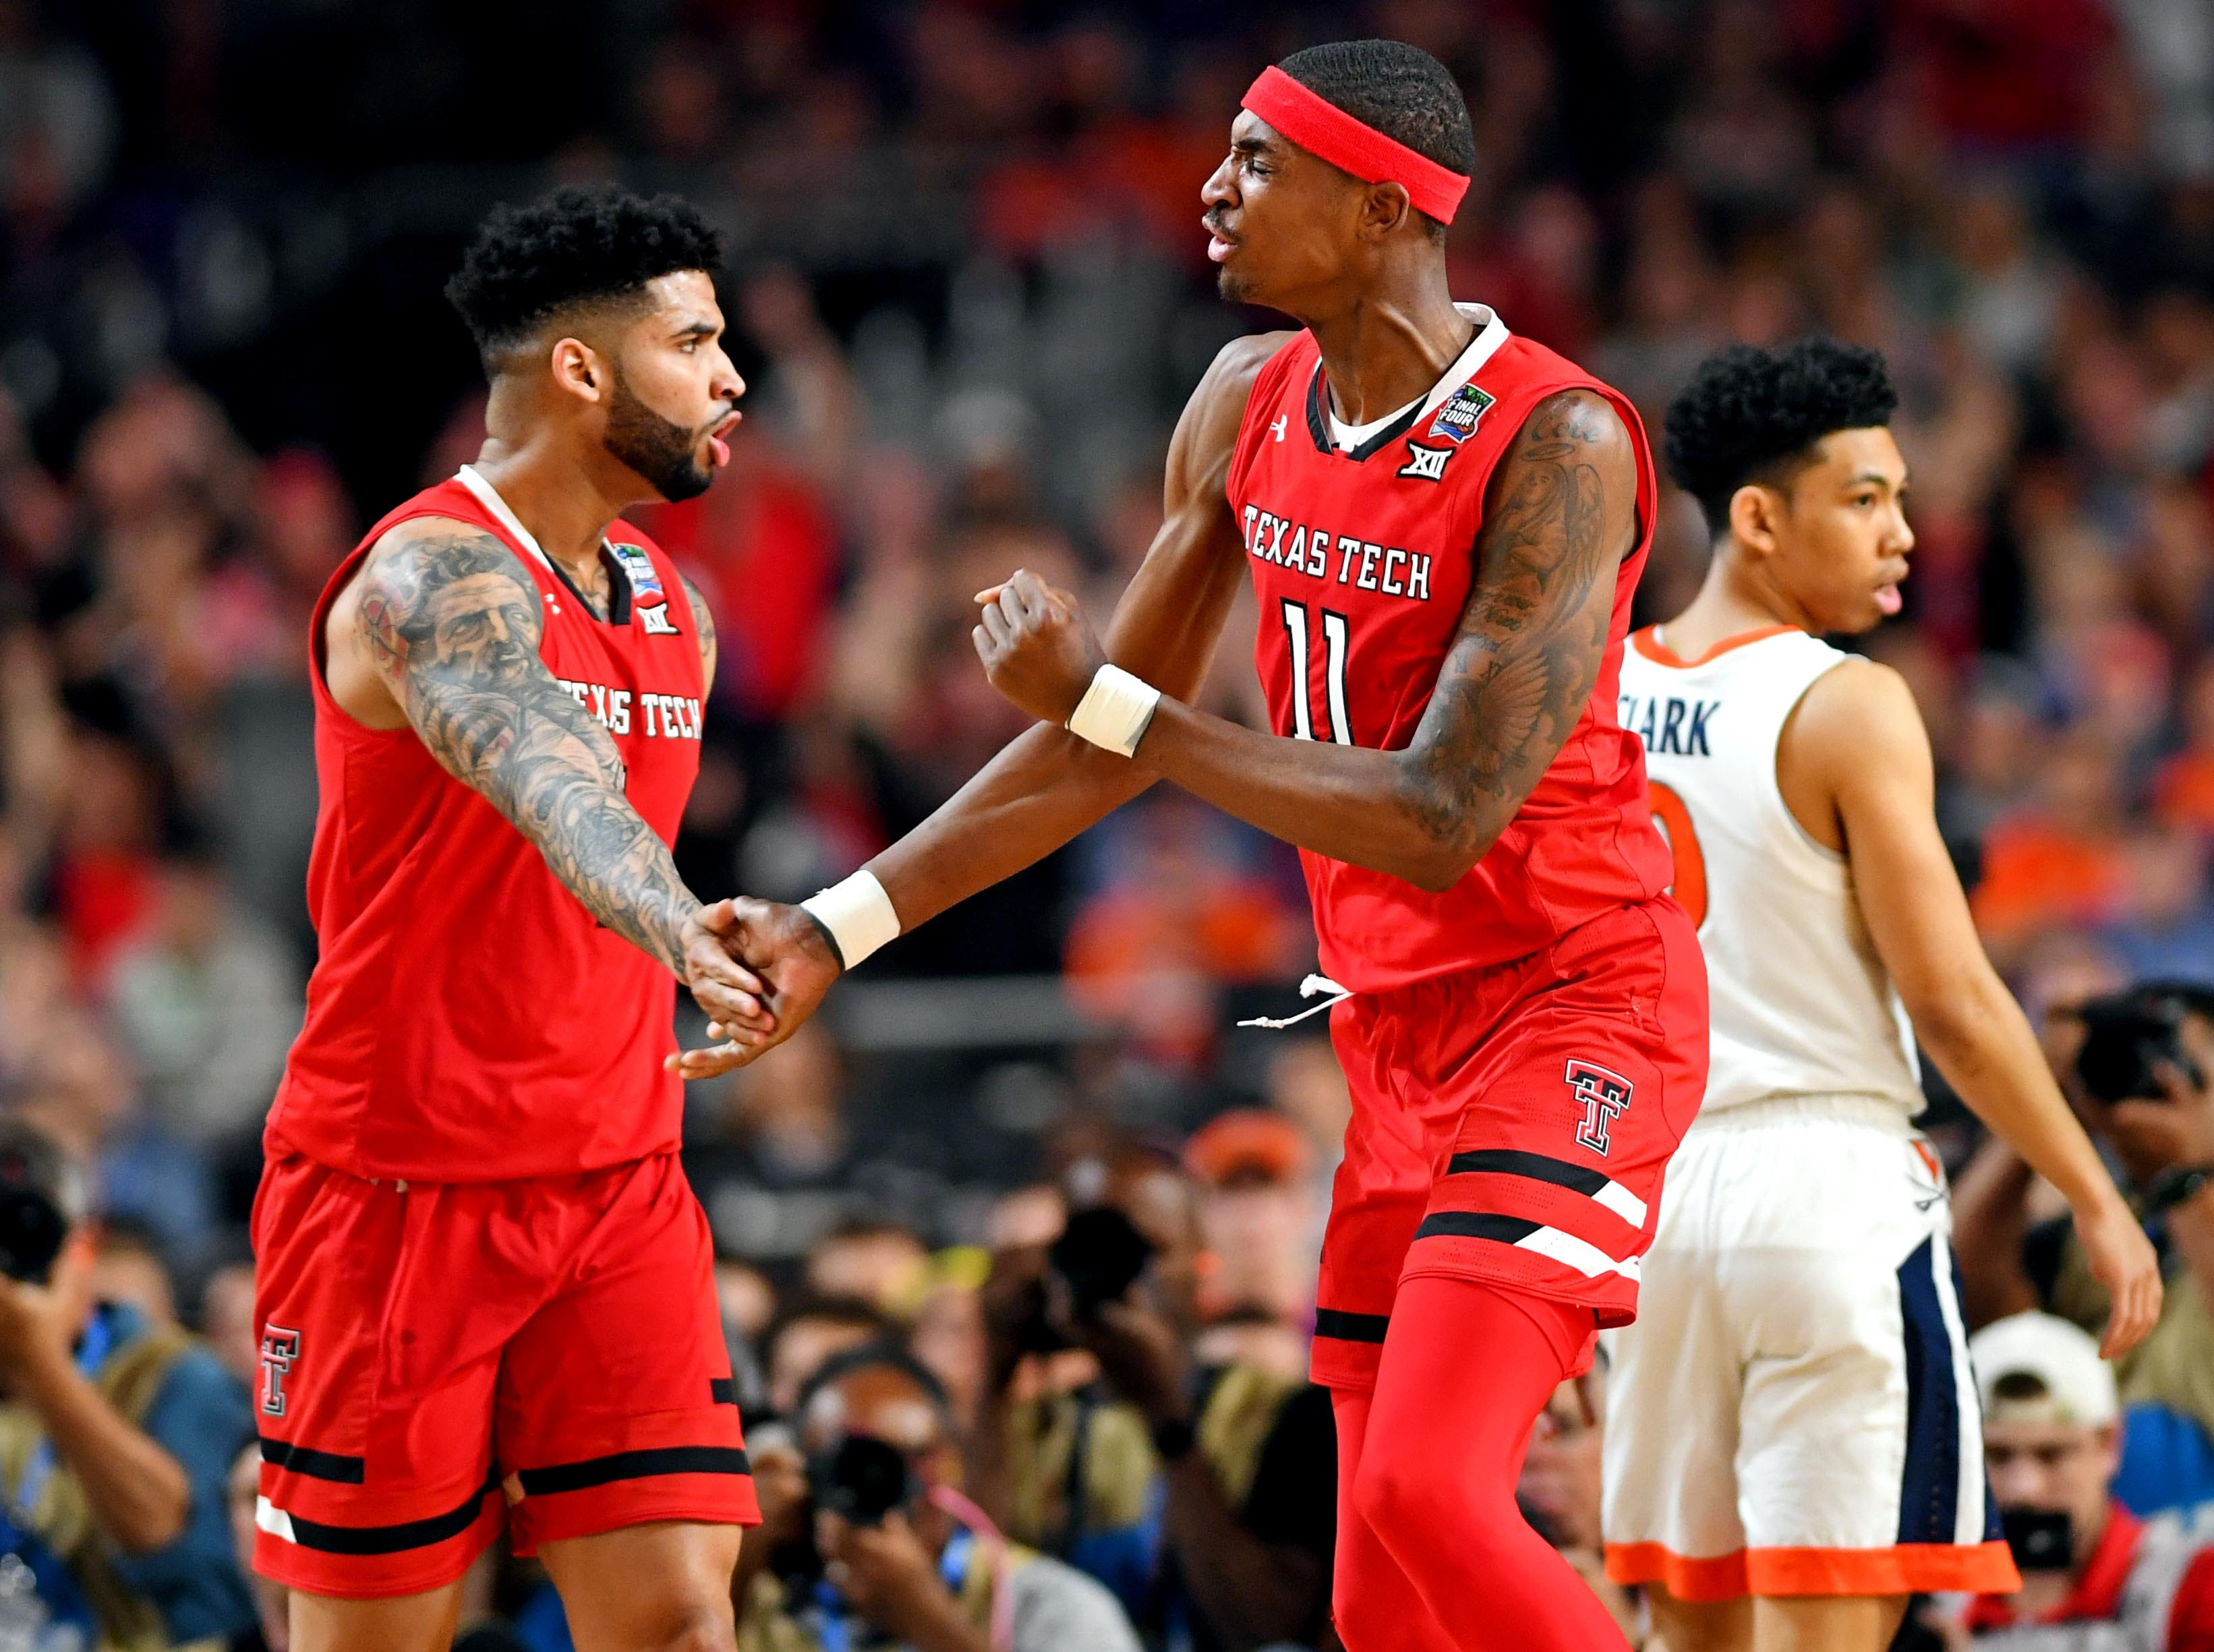 Apr 8, 2019; Minneapolis, MN, USA; Texas Tech Red Raiders forward Tariq Owens (11) celebrates with Texas Tech Red Raiders guard Kyler Edwards (0) during the first half against the Virginia Cavaliersin the championship game of the 2019 men's Final Four at US Bank Stadium. Mandatory Credit: Bob Donnan-USA TODAY Sports